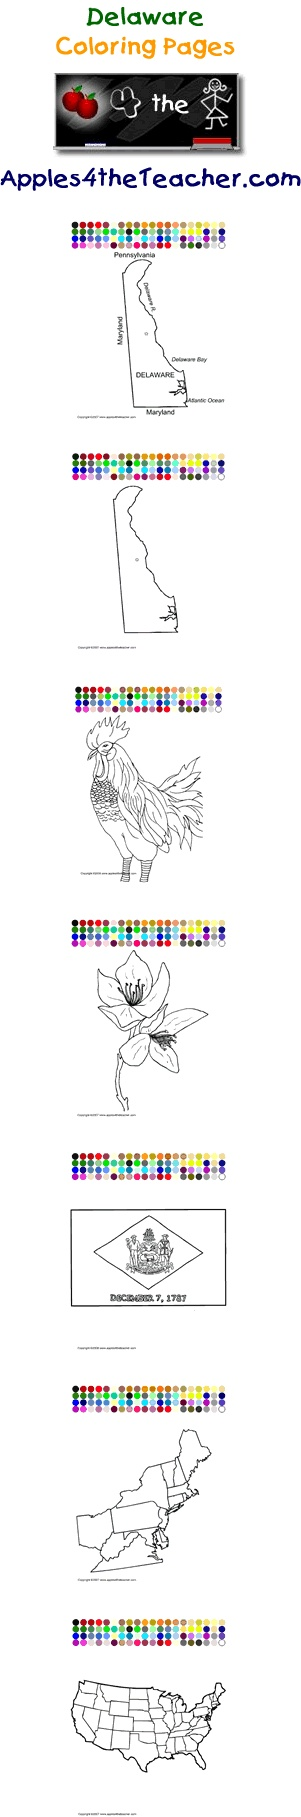 Printable interactive U.S. State coloring pages, Delaware coloring pages for kids.